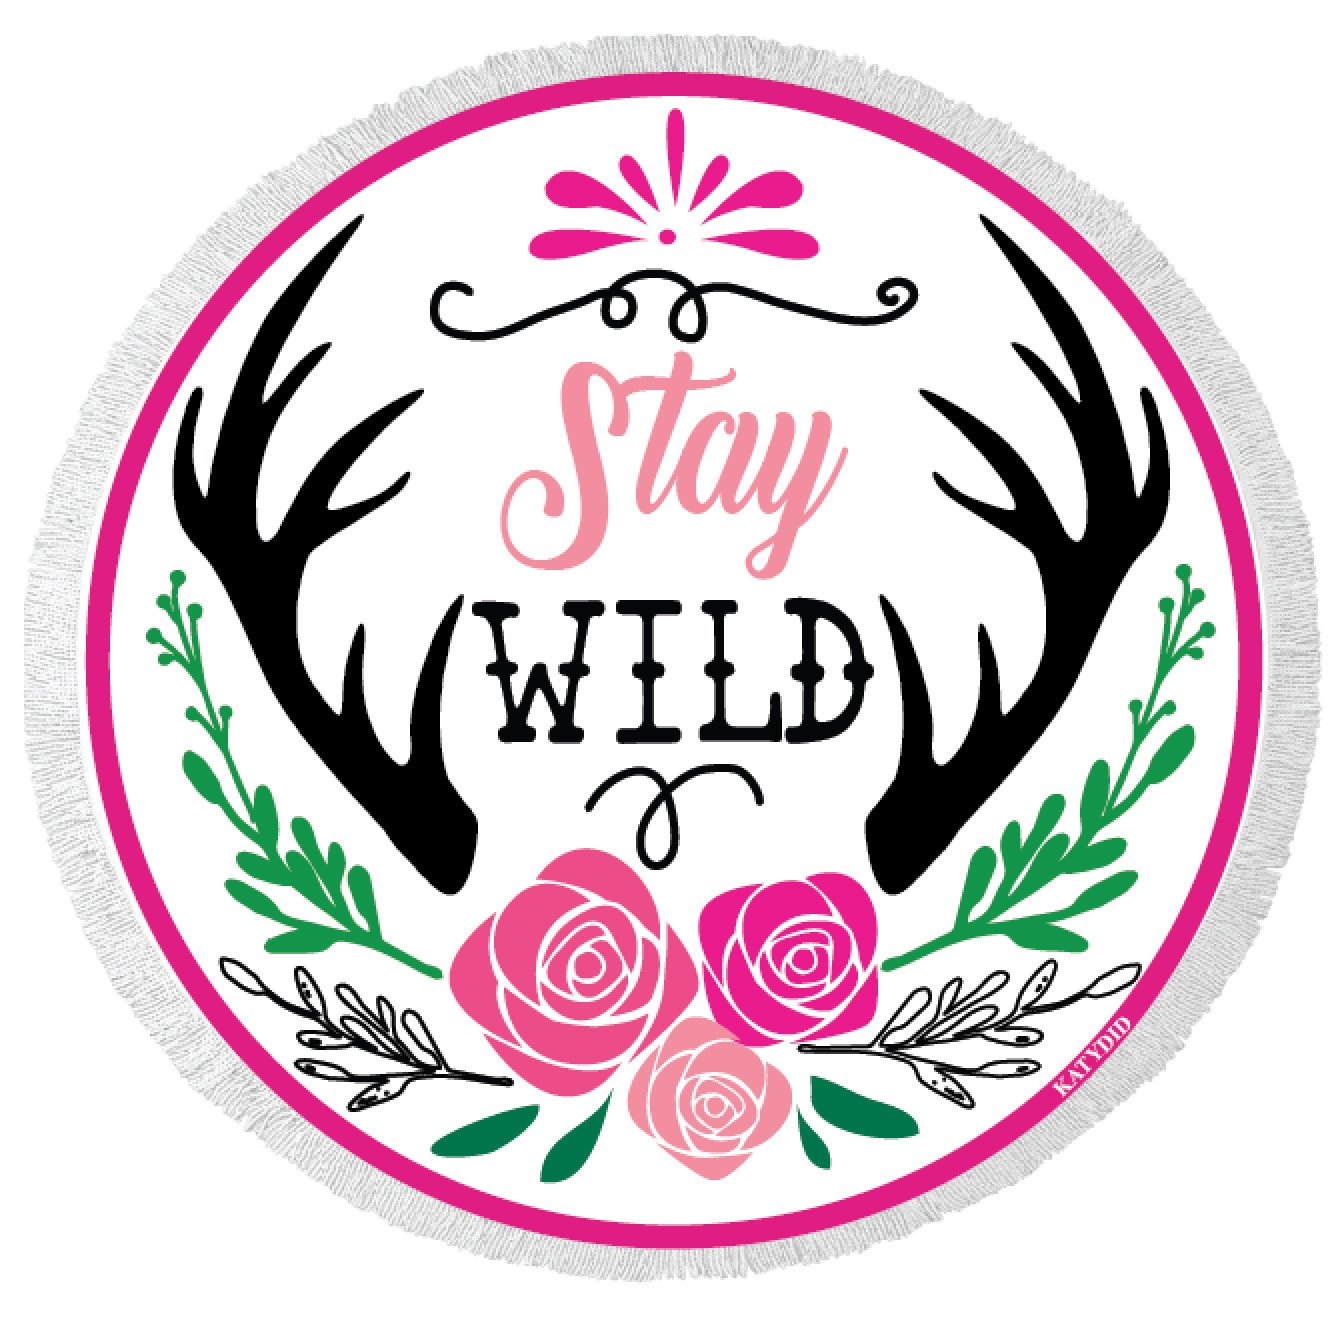 Stay Wild Round Beach Towel-Beach Towels-Shop-Absolute Paris Boutique-Womens-Clothing-Store